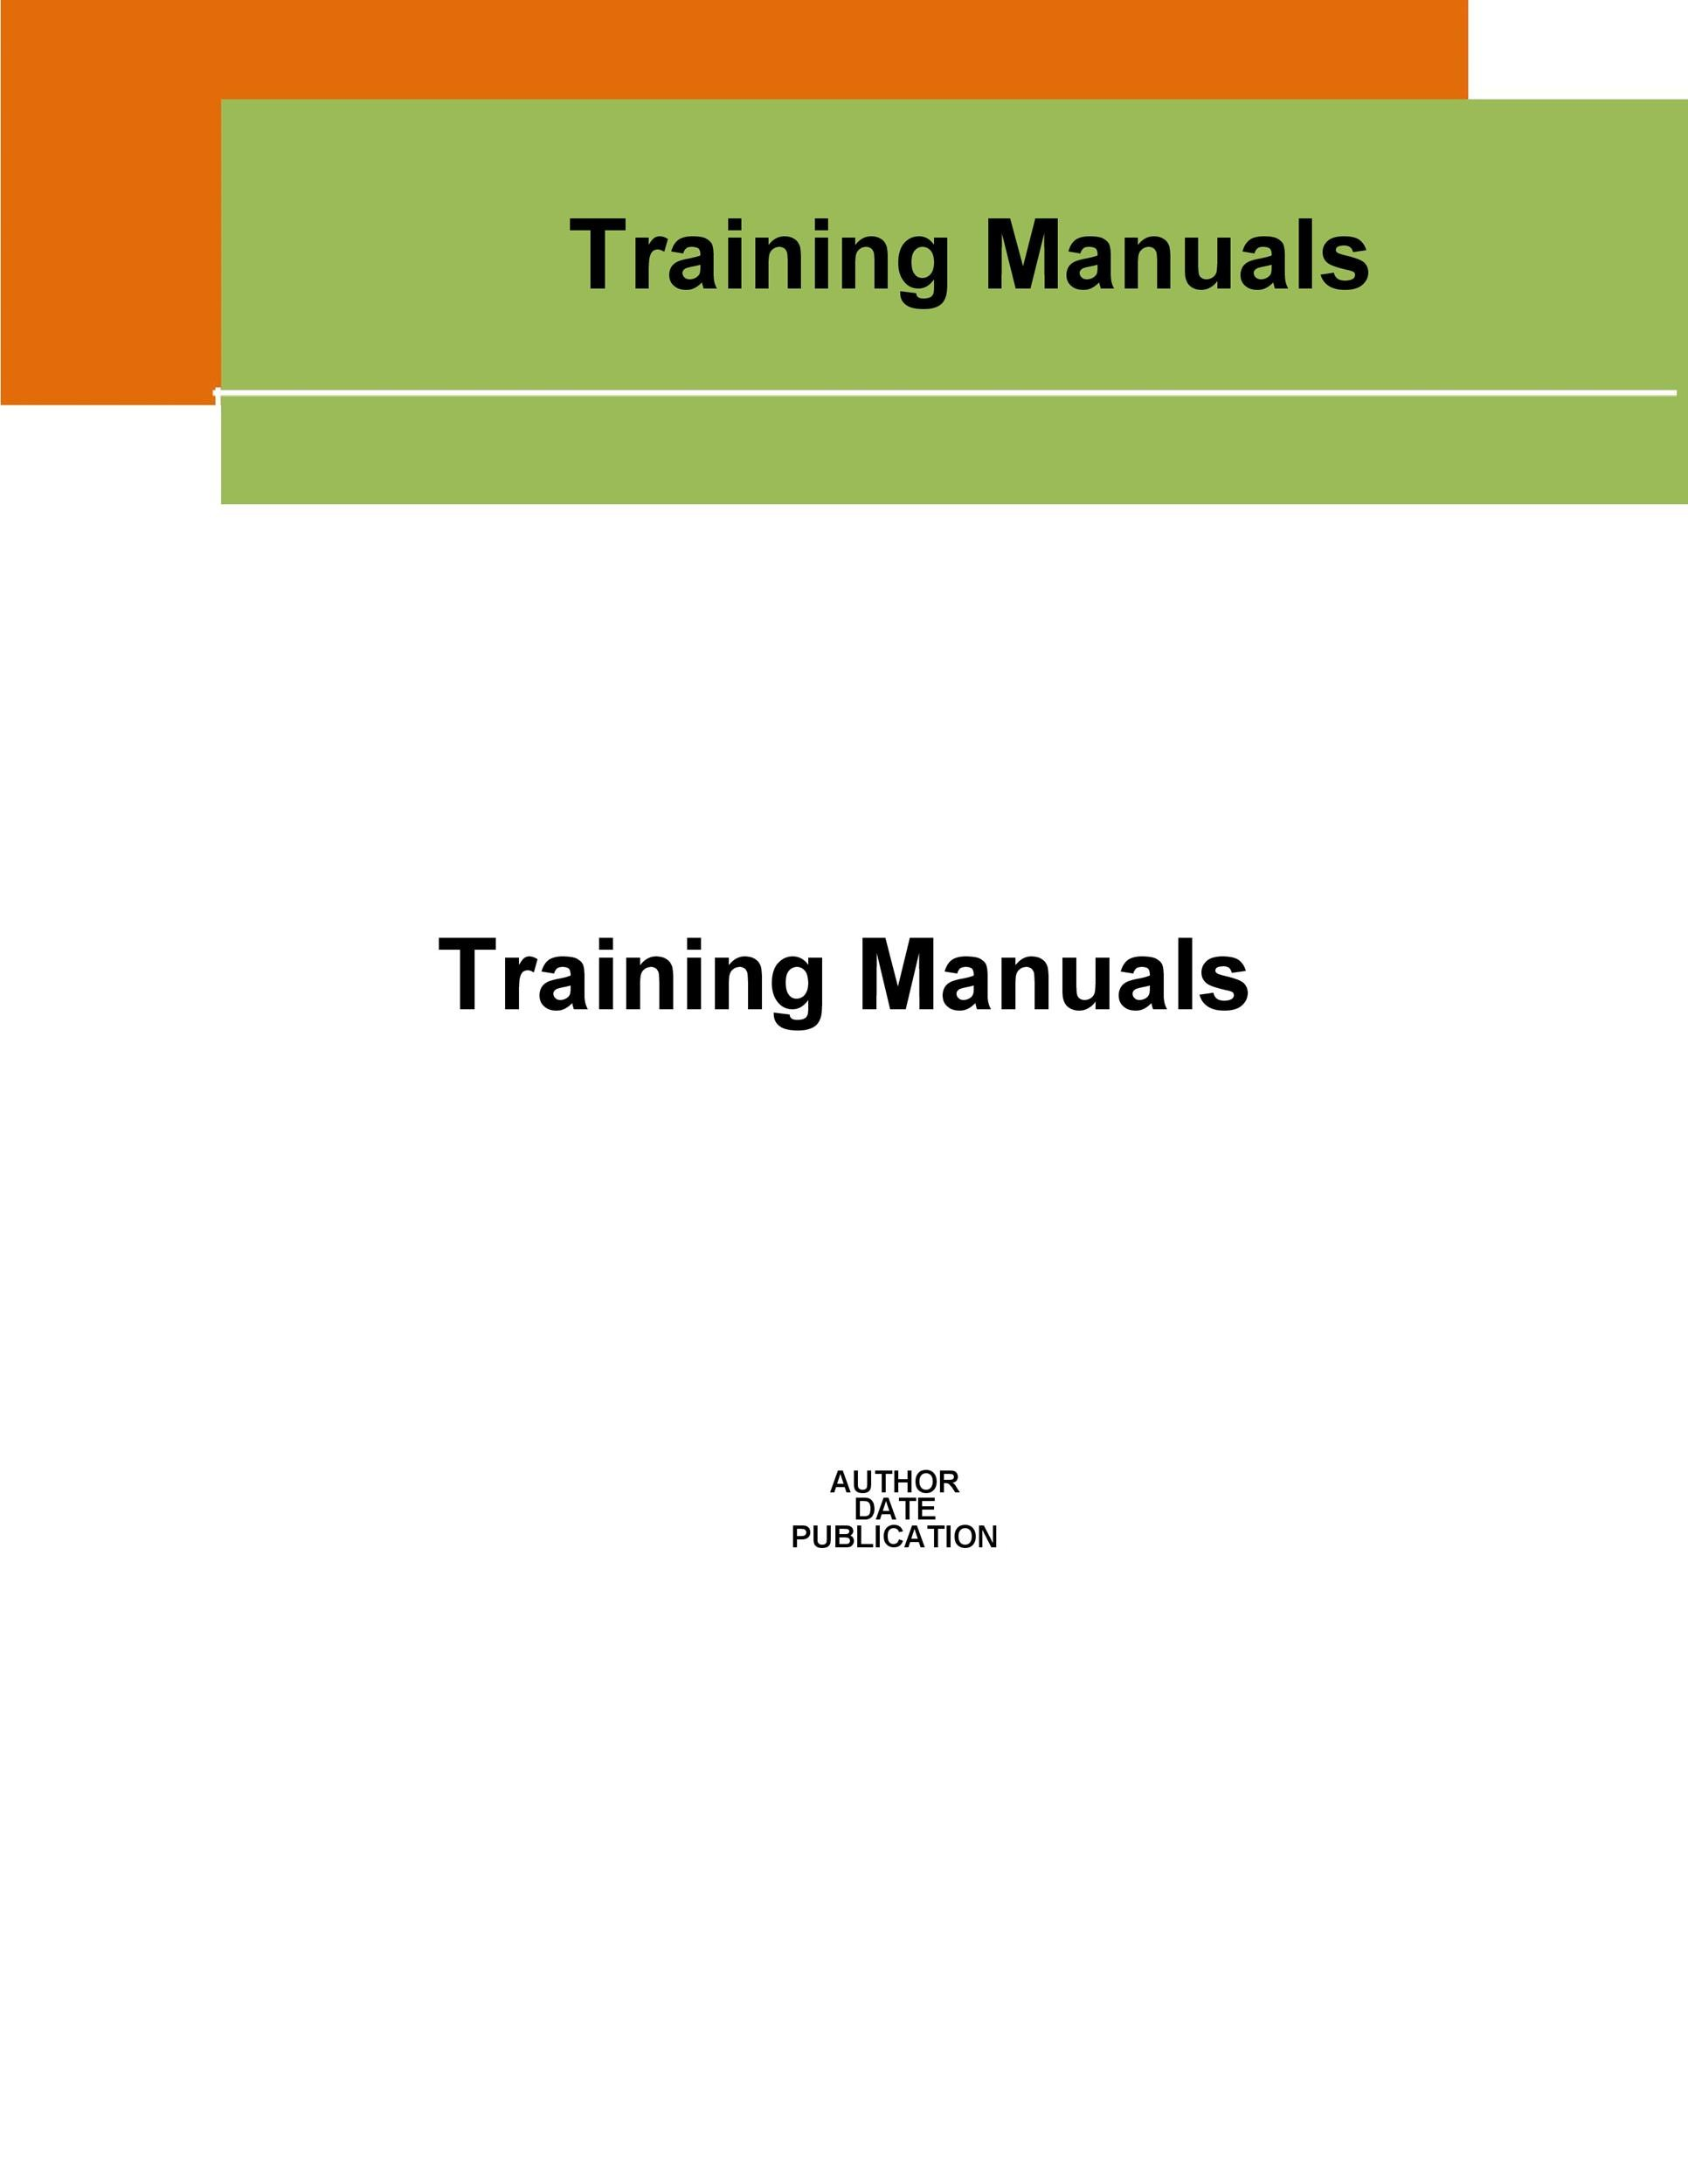 Free training manual template 16